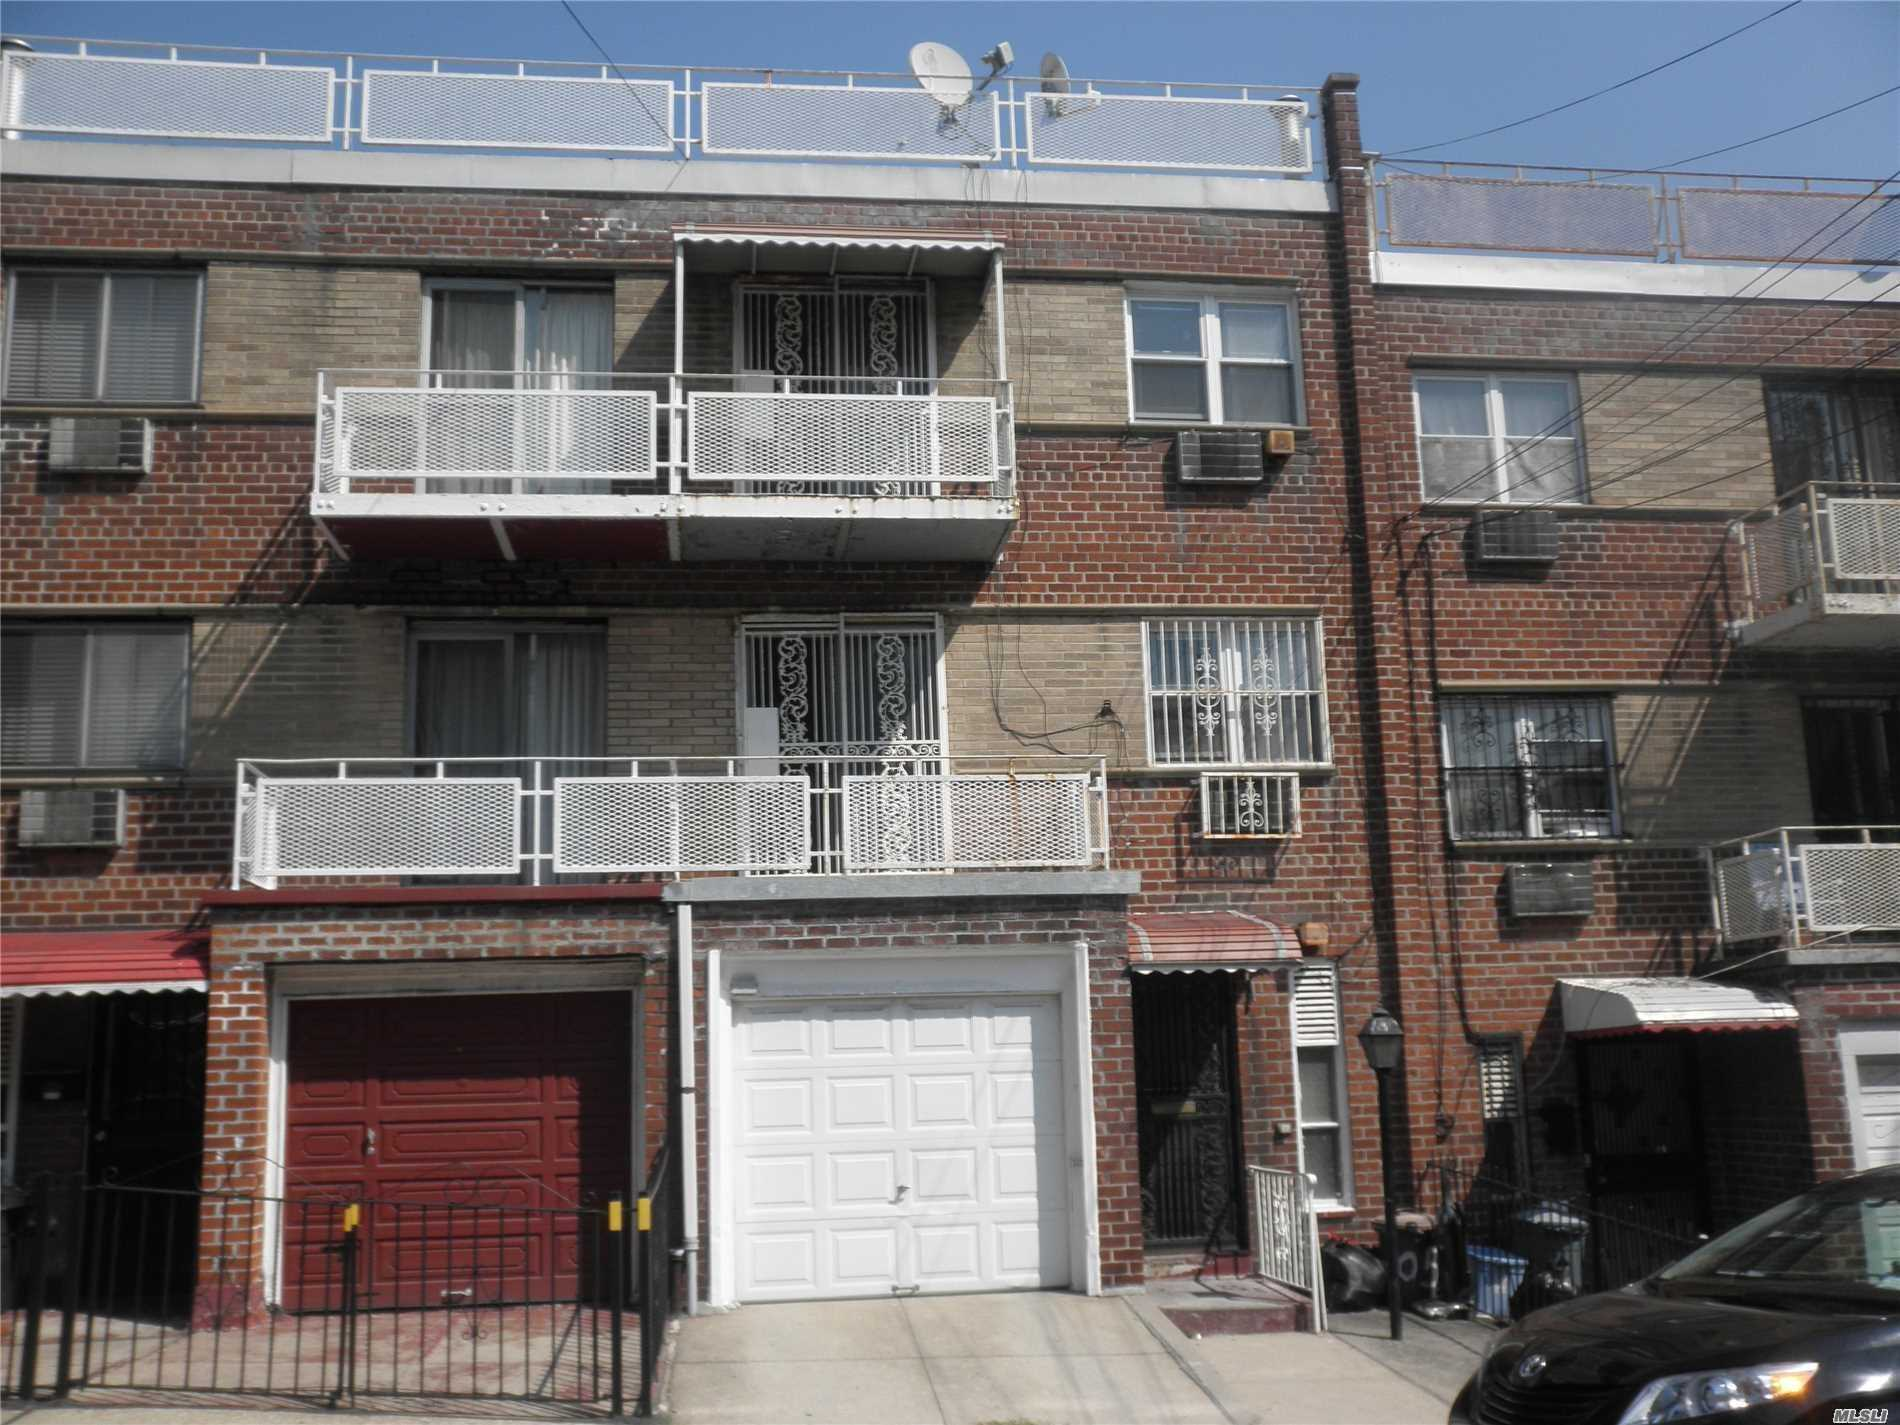 Solid All Brick Legal 2 Family With Great Investment Opportunity, Whole House Can Be Vacant At Closing !! R5 Zoning, Best Elmhurst Location, Conveniently Located Minutes From #7 Train Station, Minutes To Downtown Flushing Or Midtown Manhattan. Near Roosevelt Ave Shops, Restaurants, Banks And Much More.